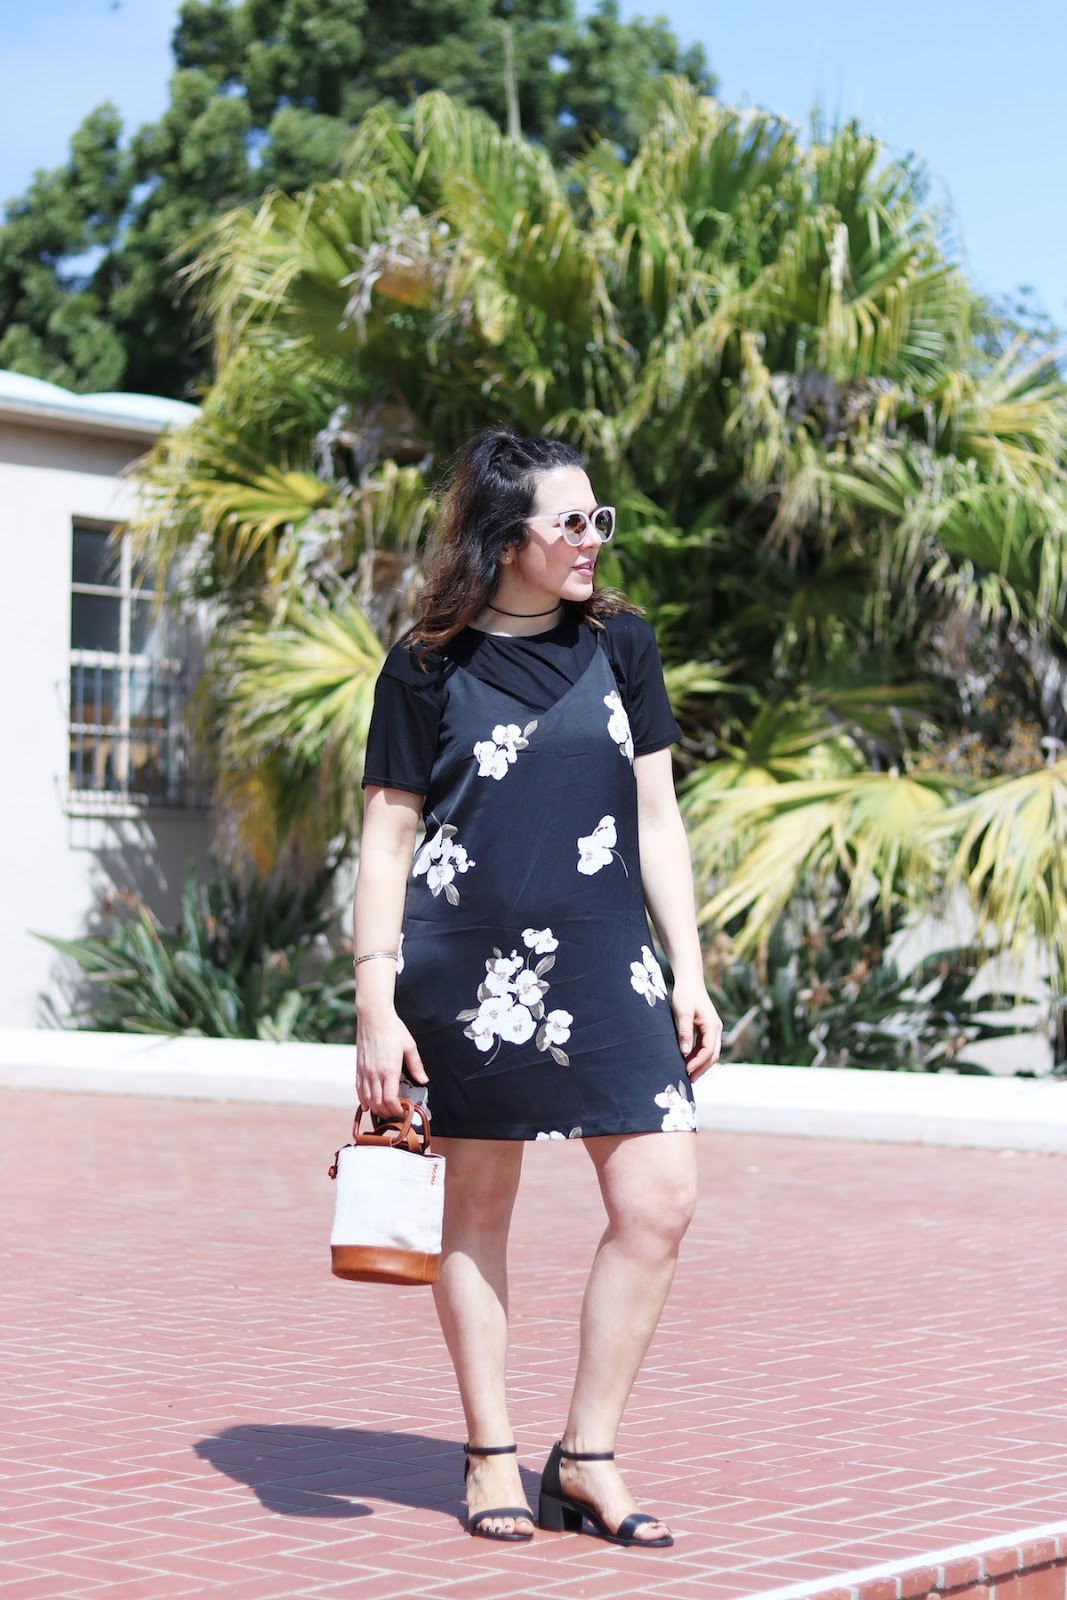 Dynamite floral slip dress outfit vancouver fashion blogger san diego le chateau sandals sunglasses ela bucket bag